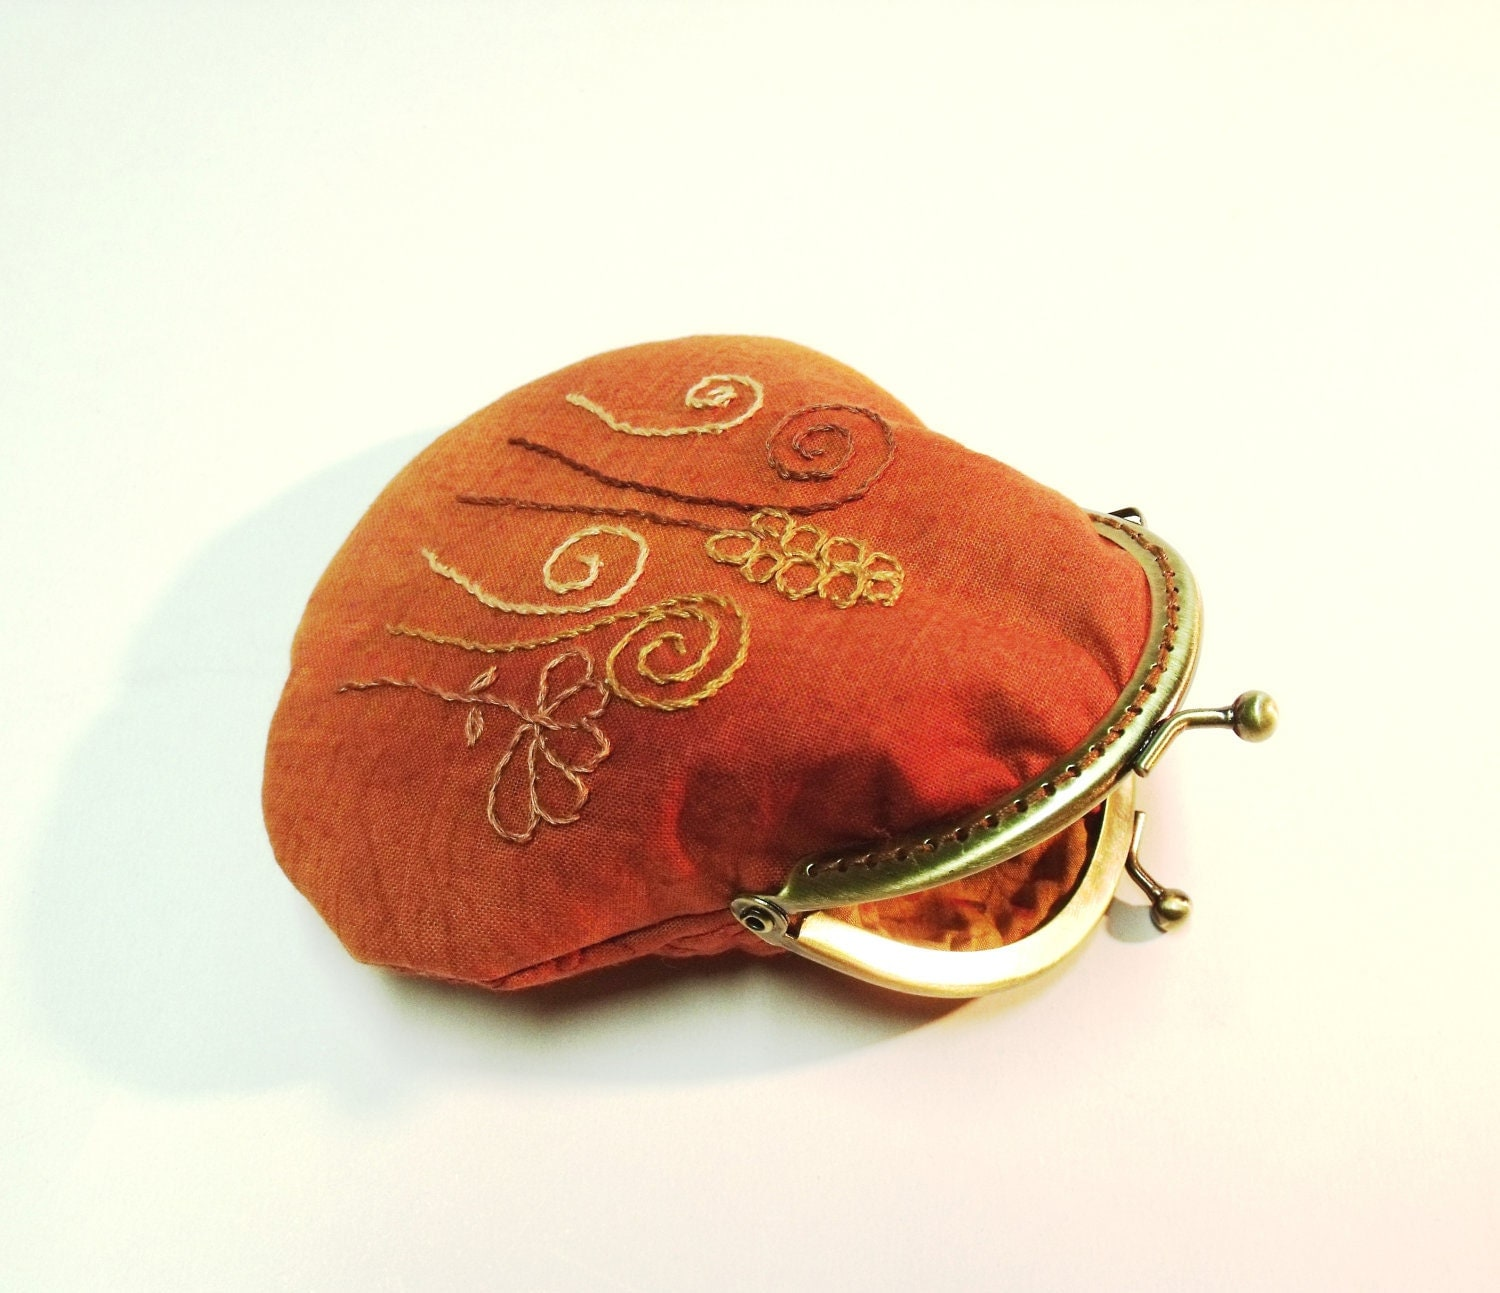 Coin frame purse with hand embroiedered in dead leaf color (curved bottom)